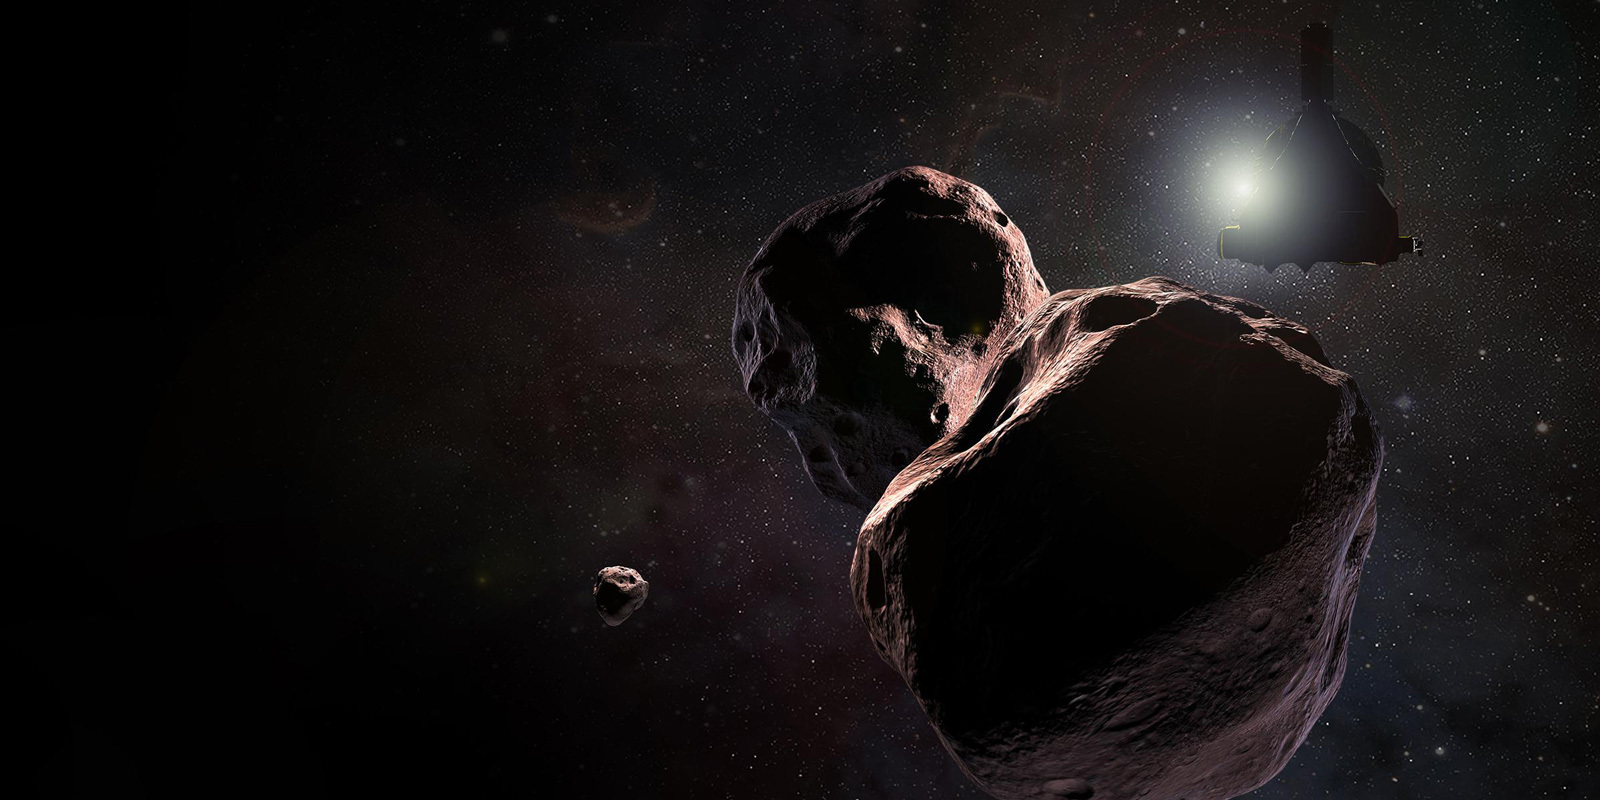 Illustration of spacecraft near a giant space rock far from the Sun.